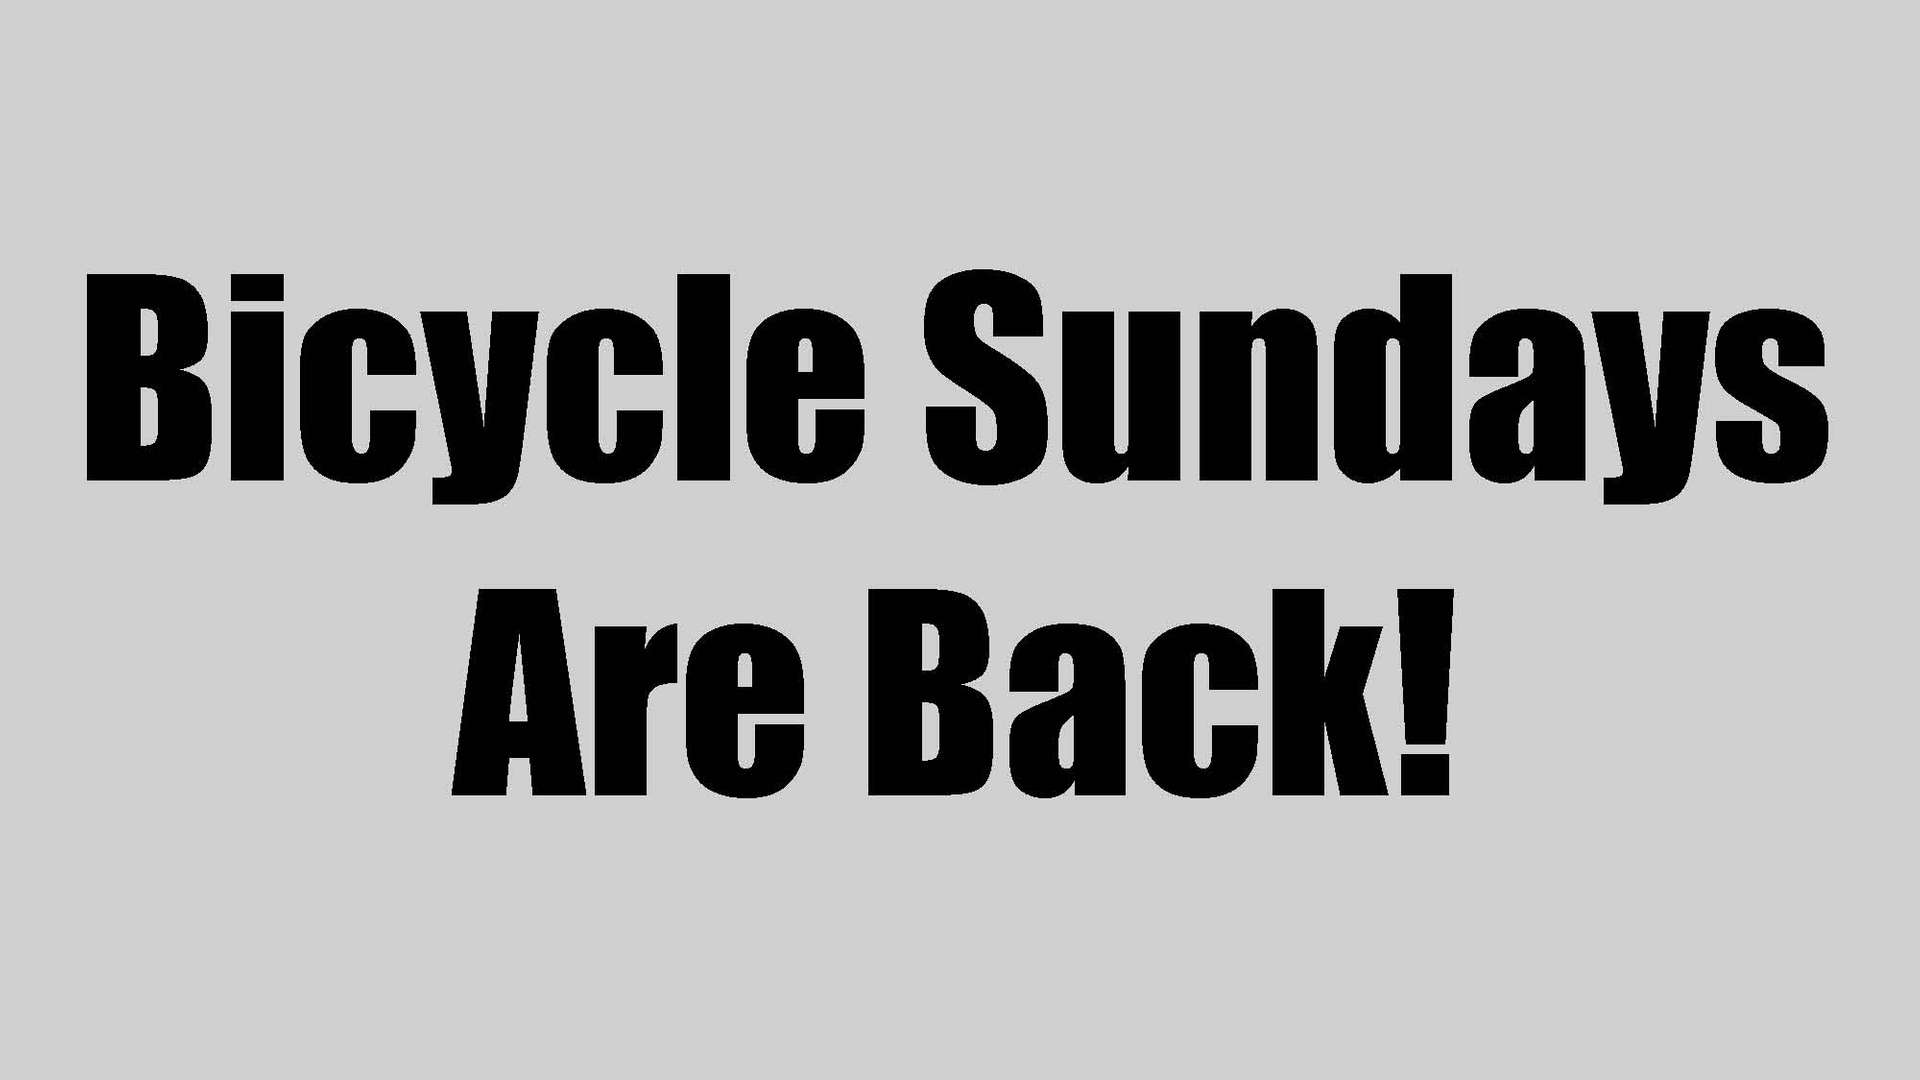 Bicycle Sundays are Back!